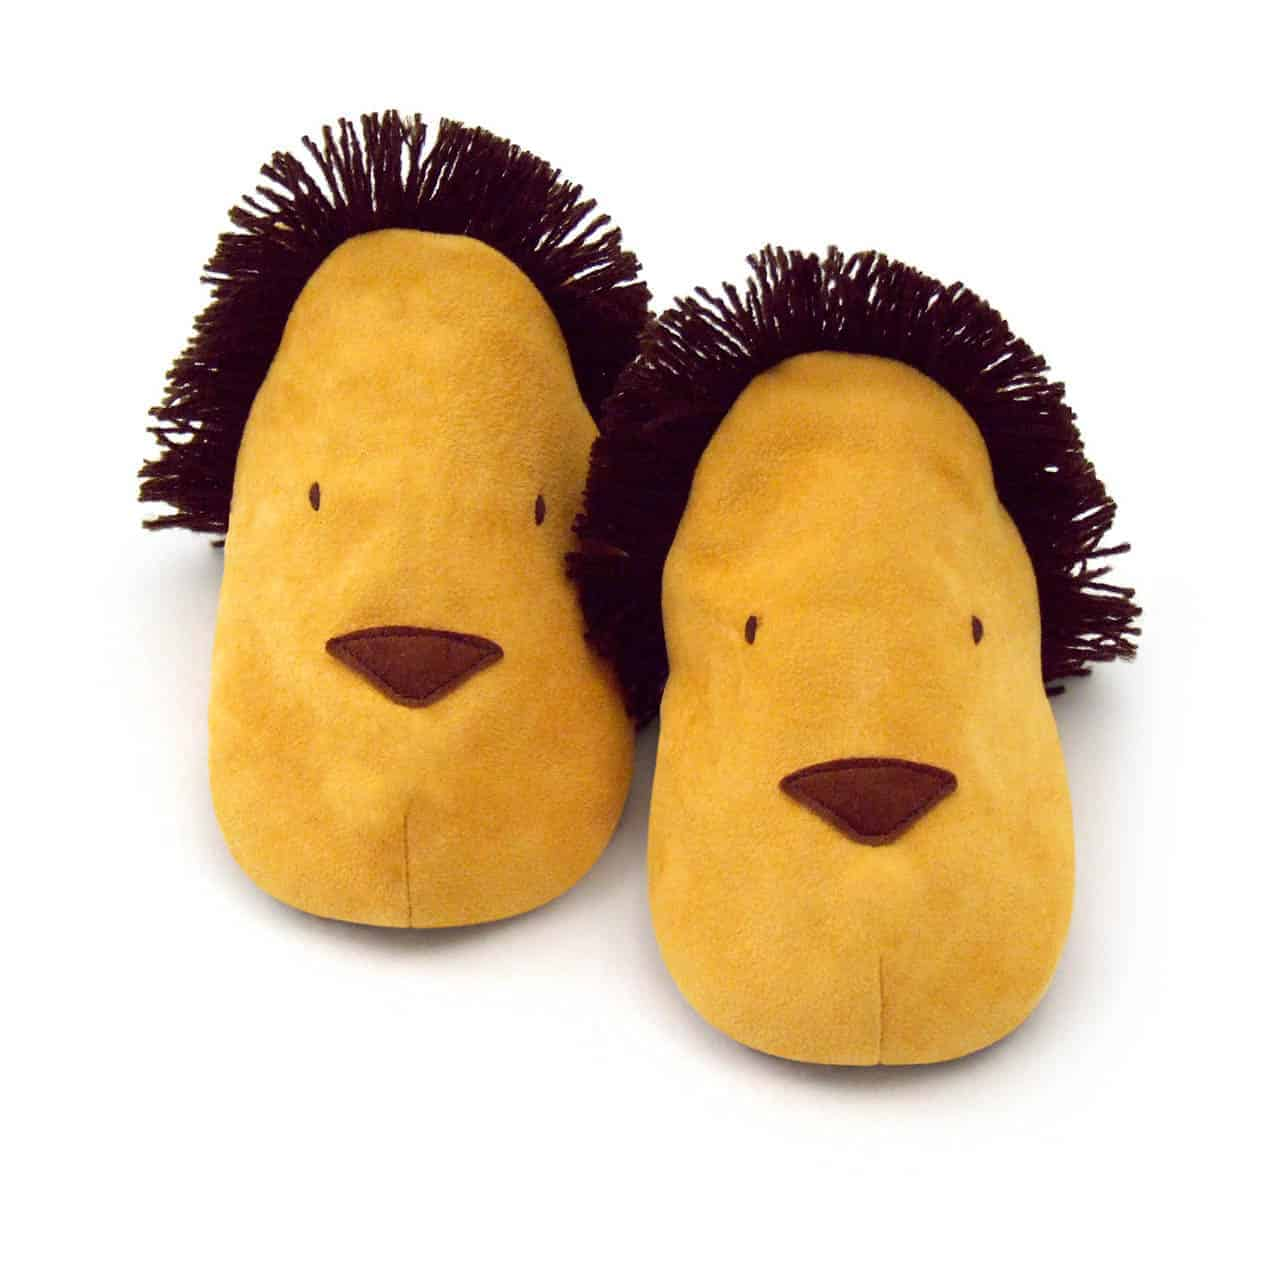 dda91b59020 Lion Soft Baby Shoes   Toddler Slippers - Funky Feet Fashions